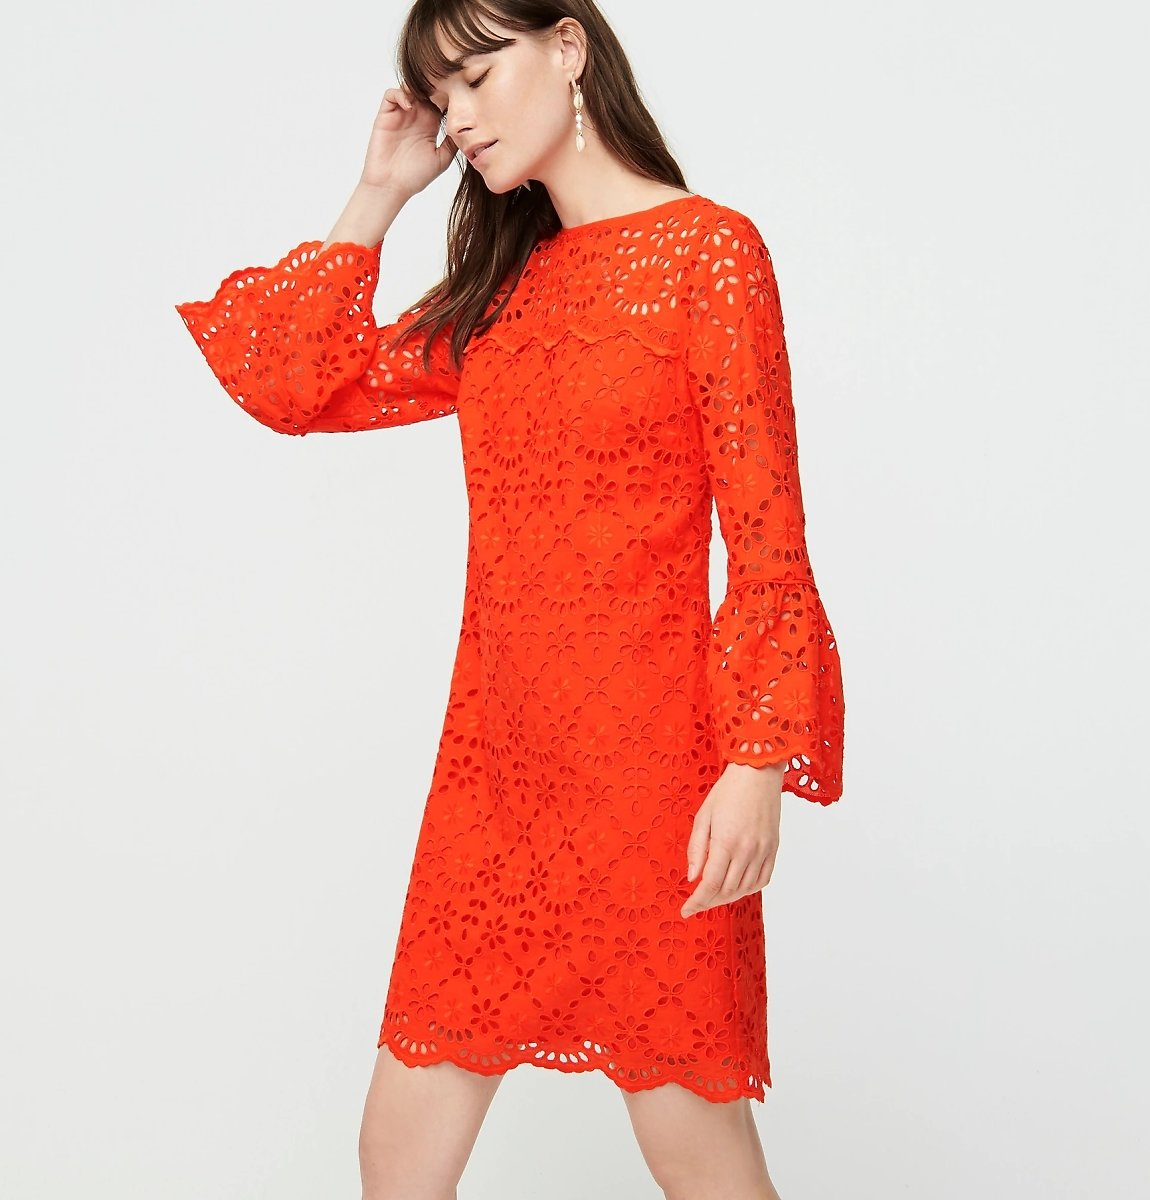 J.Crew Bell-sleeve Dress in Embroidered Eyelet (2 Colors)